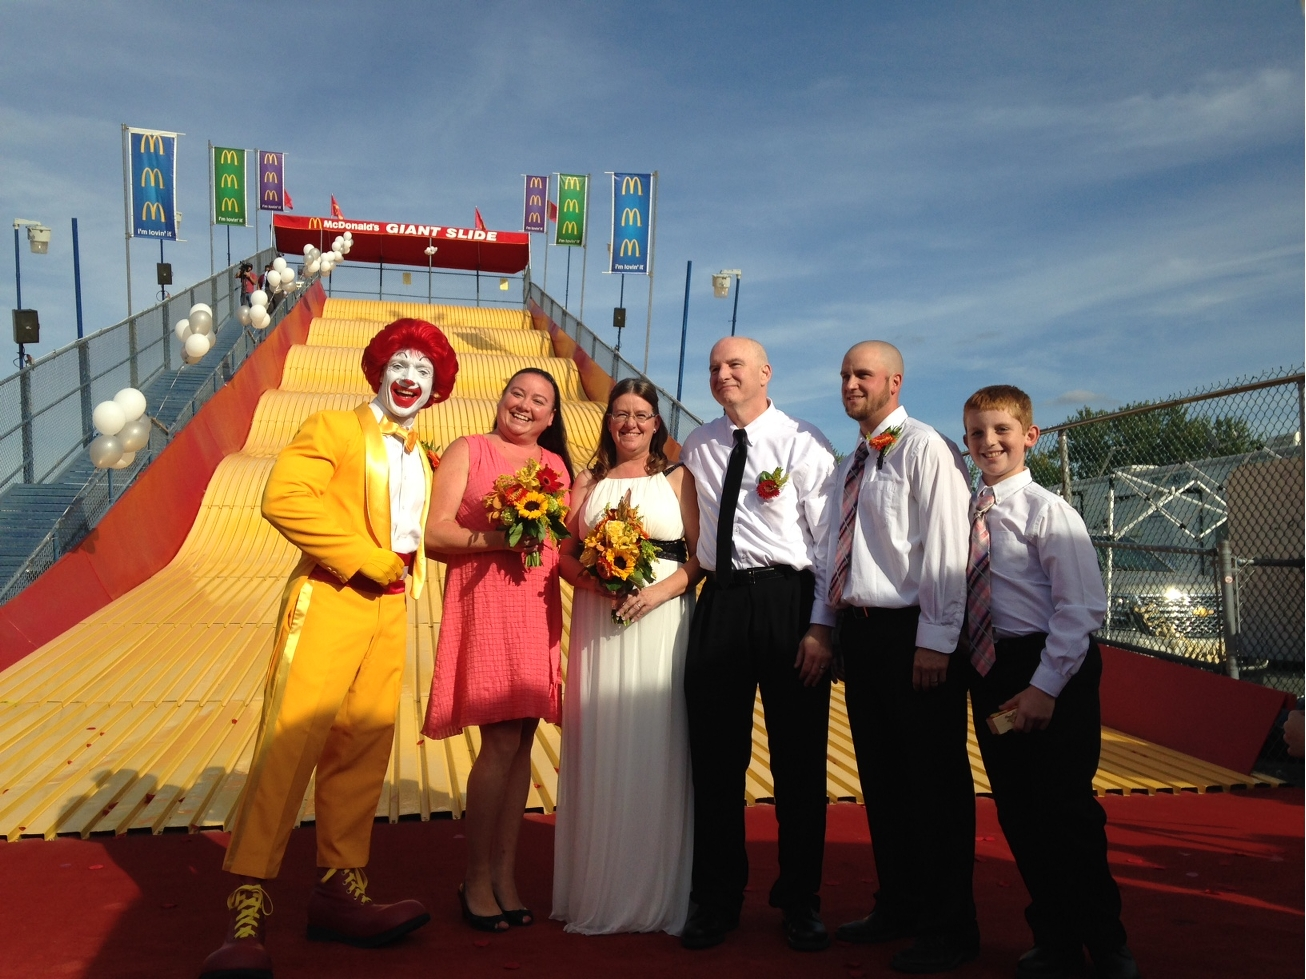 McDonald's wedding party